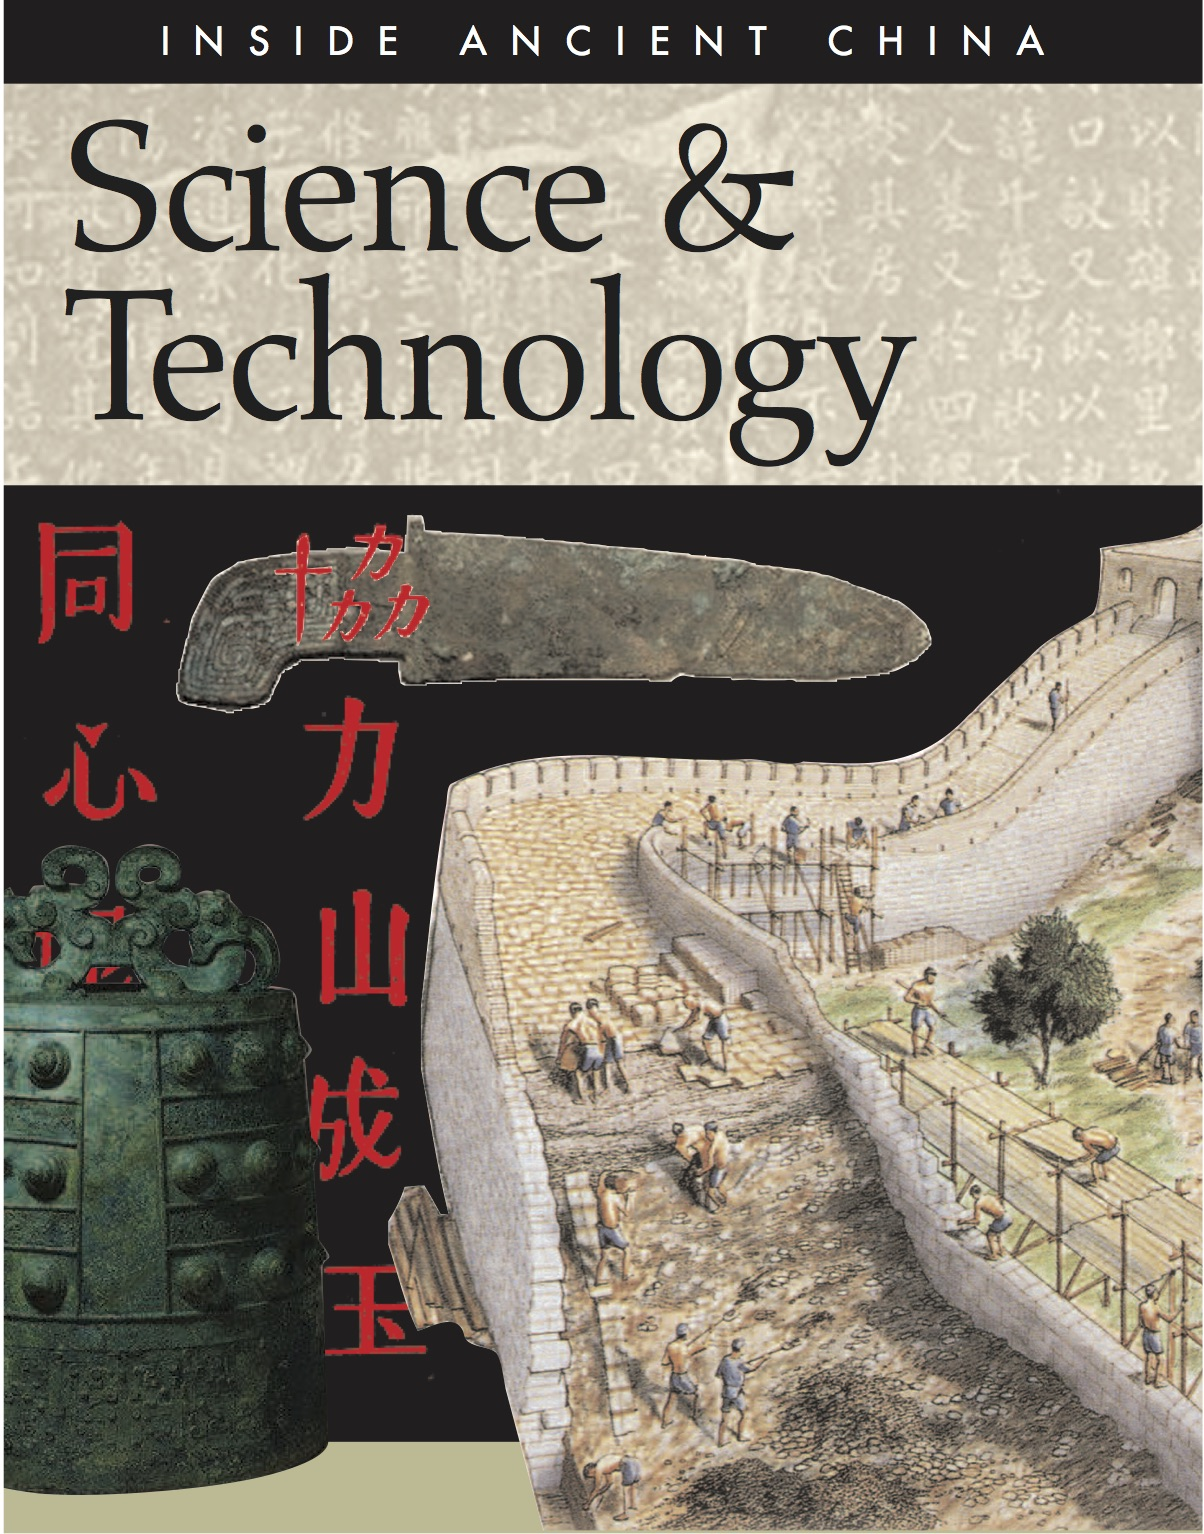 Inside Ancient China: Science & Technology